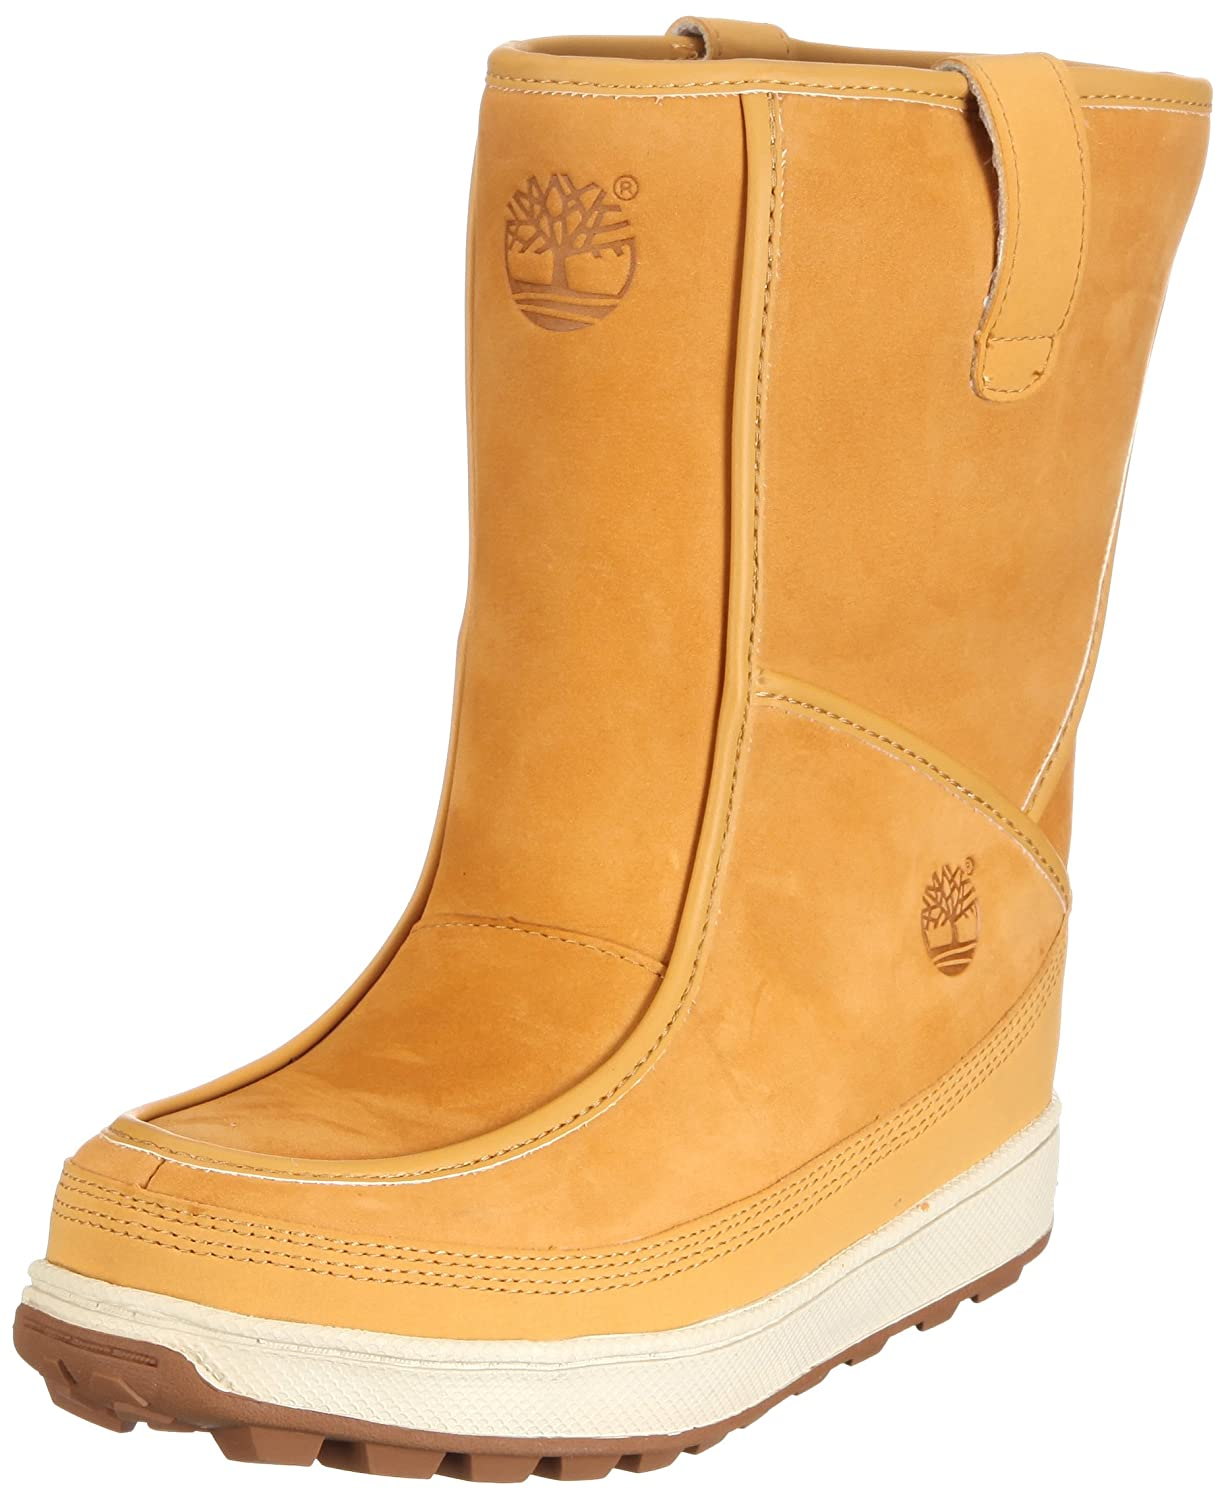 0a32f72582ff8 Amazon.com | Timberland Mukluk Pull-On Boot (Toddler/Little Kid/Big ...